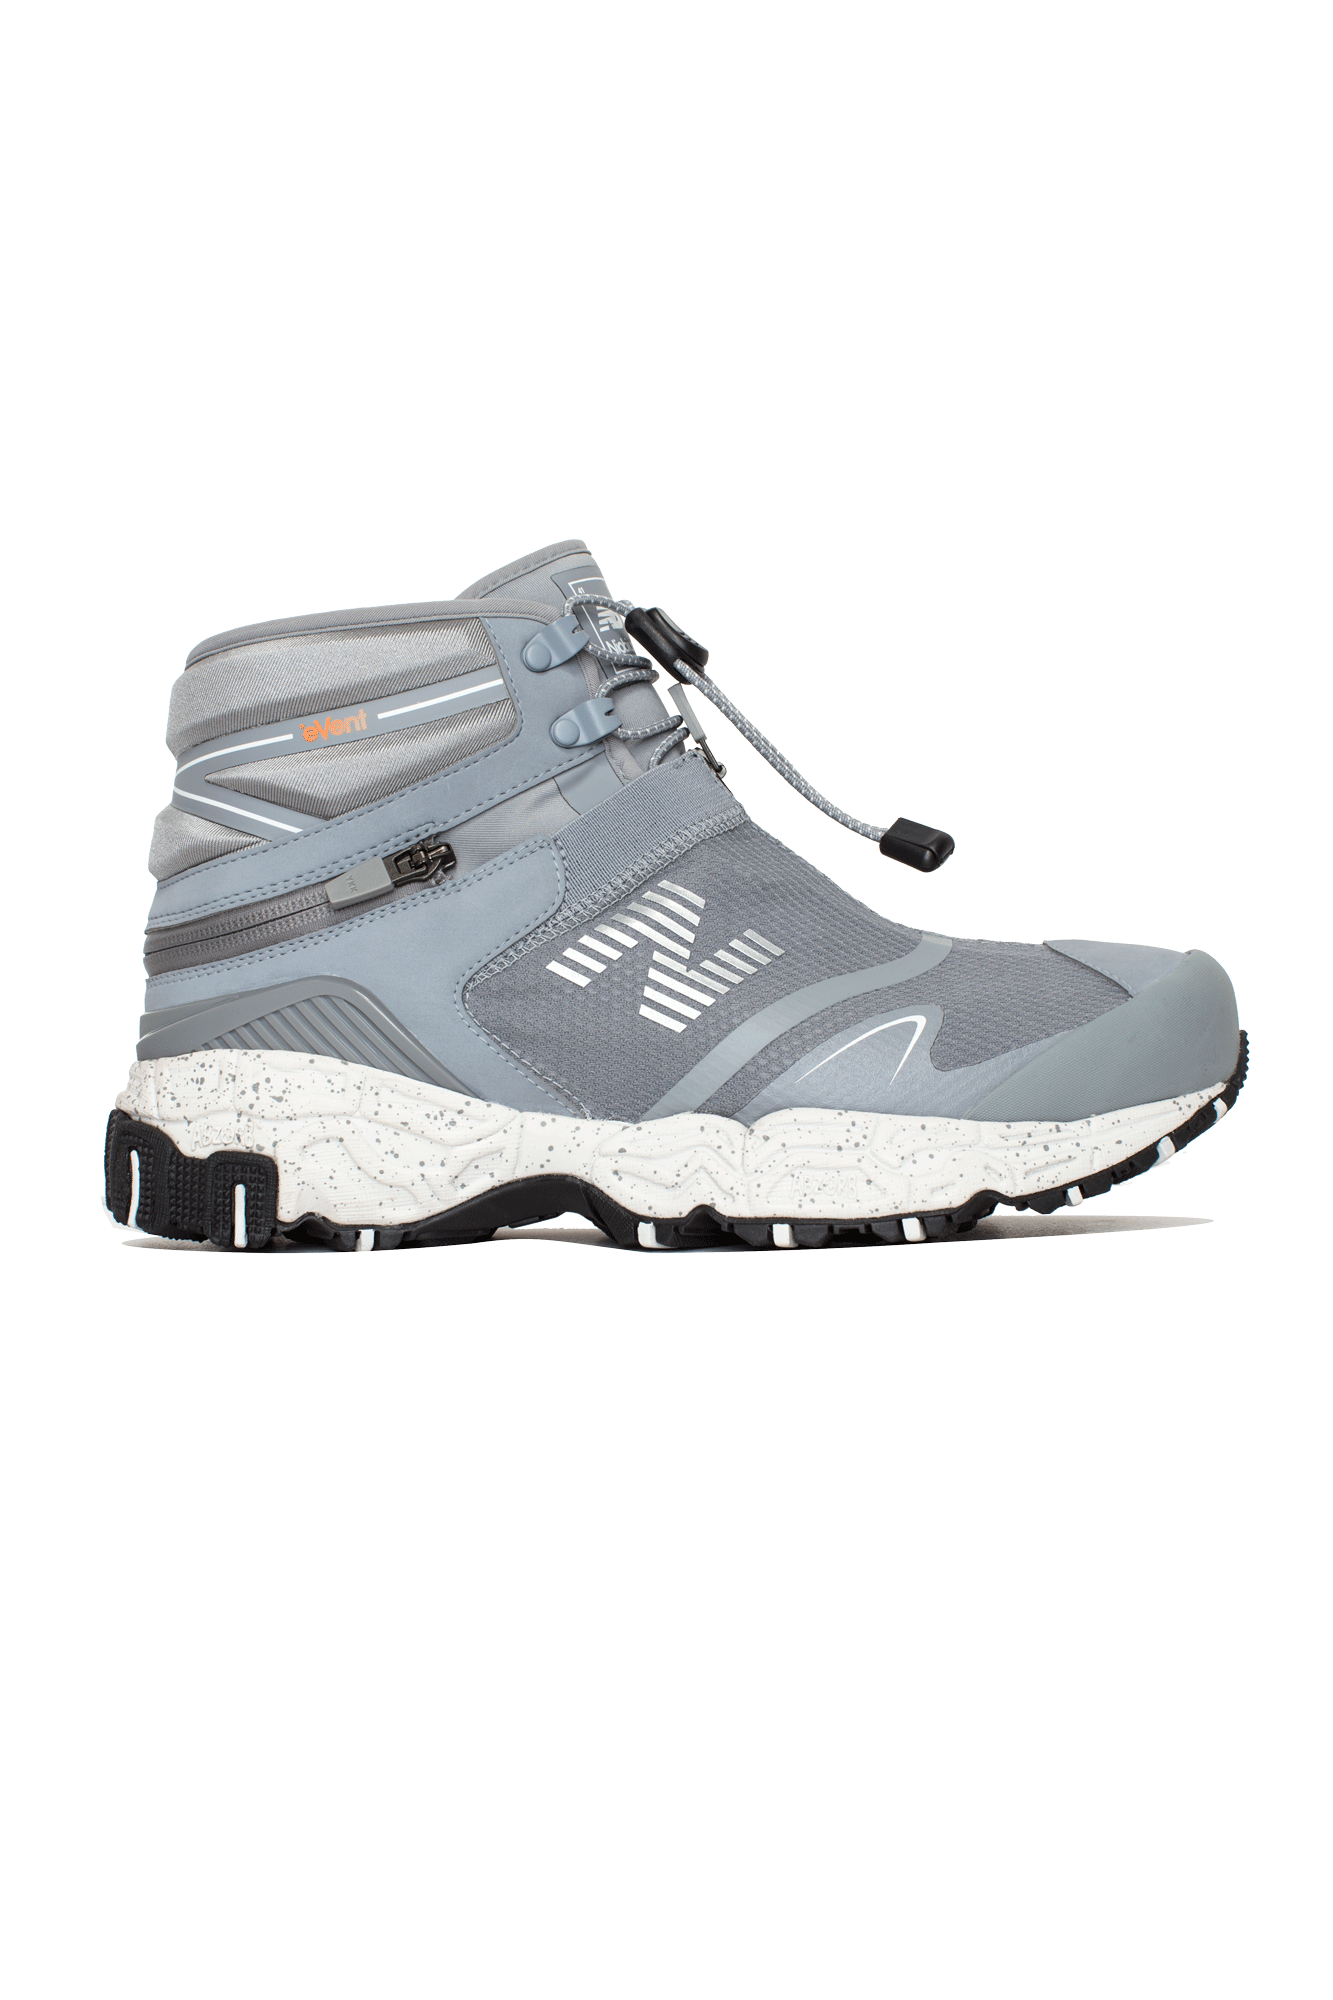 New Balance Sneakers Niobium Grey MSNB1#000#GY#8 - One Block Down